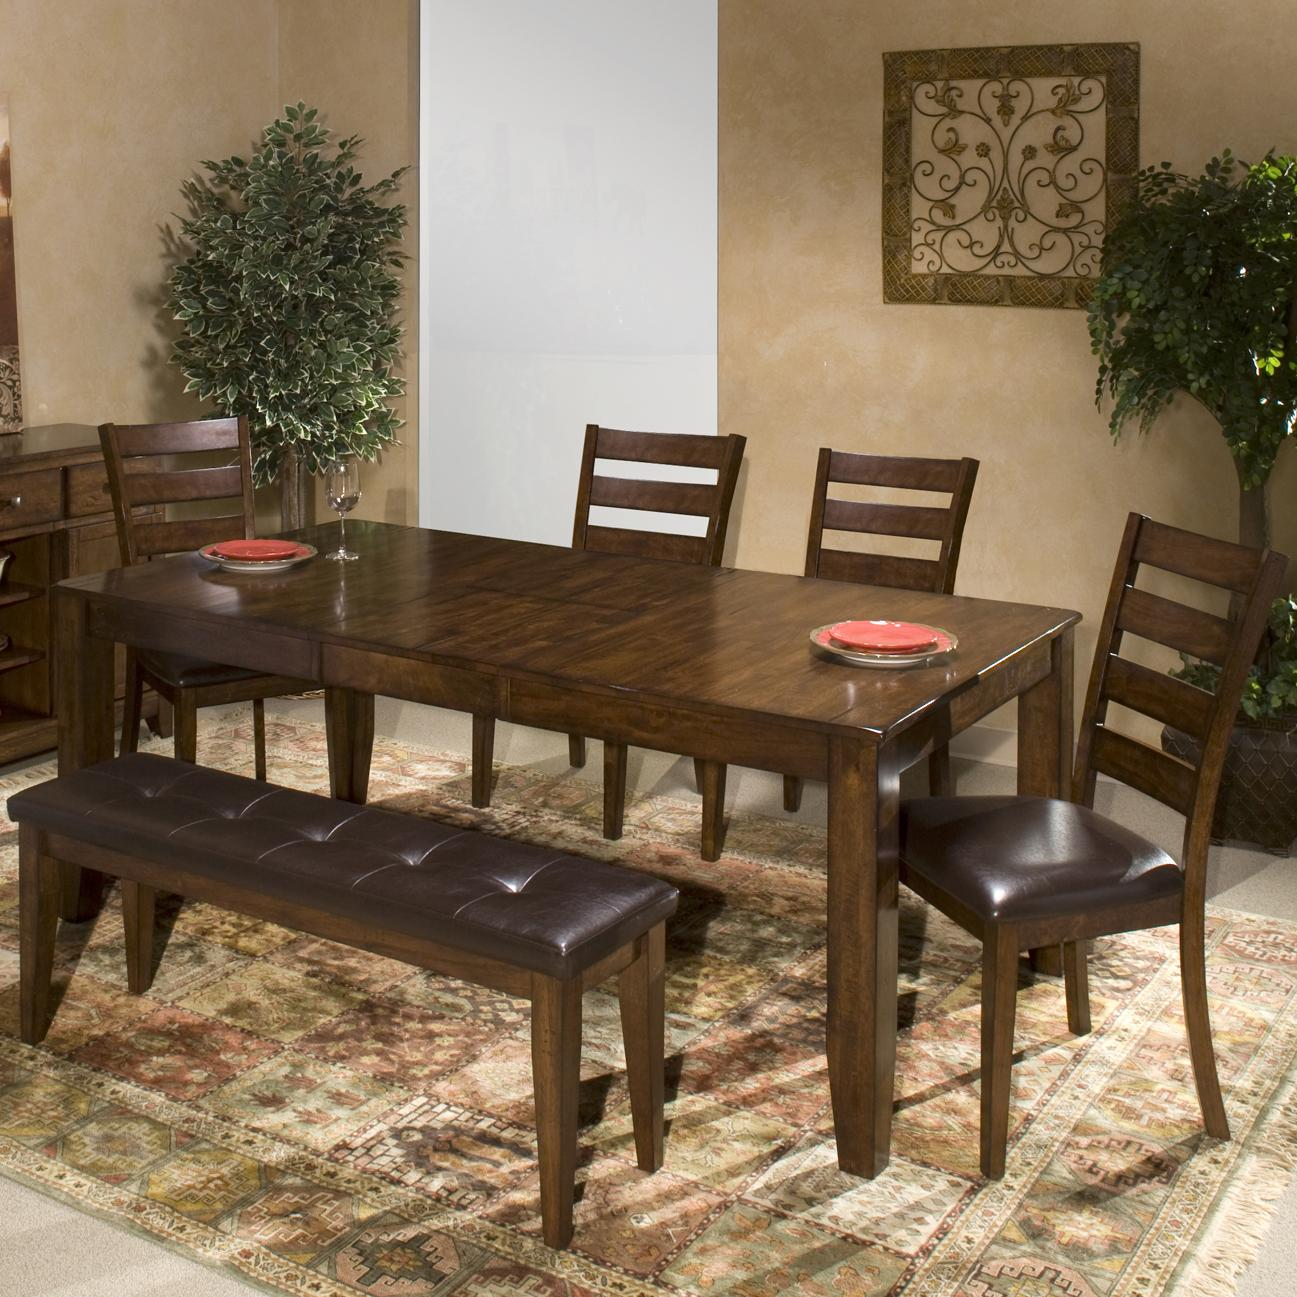 6 Piece Mango Wood Dining Room Set by Intercon Wolf and  : products2Fintercon2Fcolor2Fkonaka ta 4278b rai c2B4xch 669l2B1650l b from www.wolffurniture.com size 1297 x 1297 jpeg 236kB